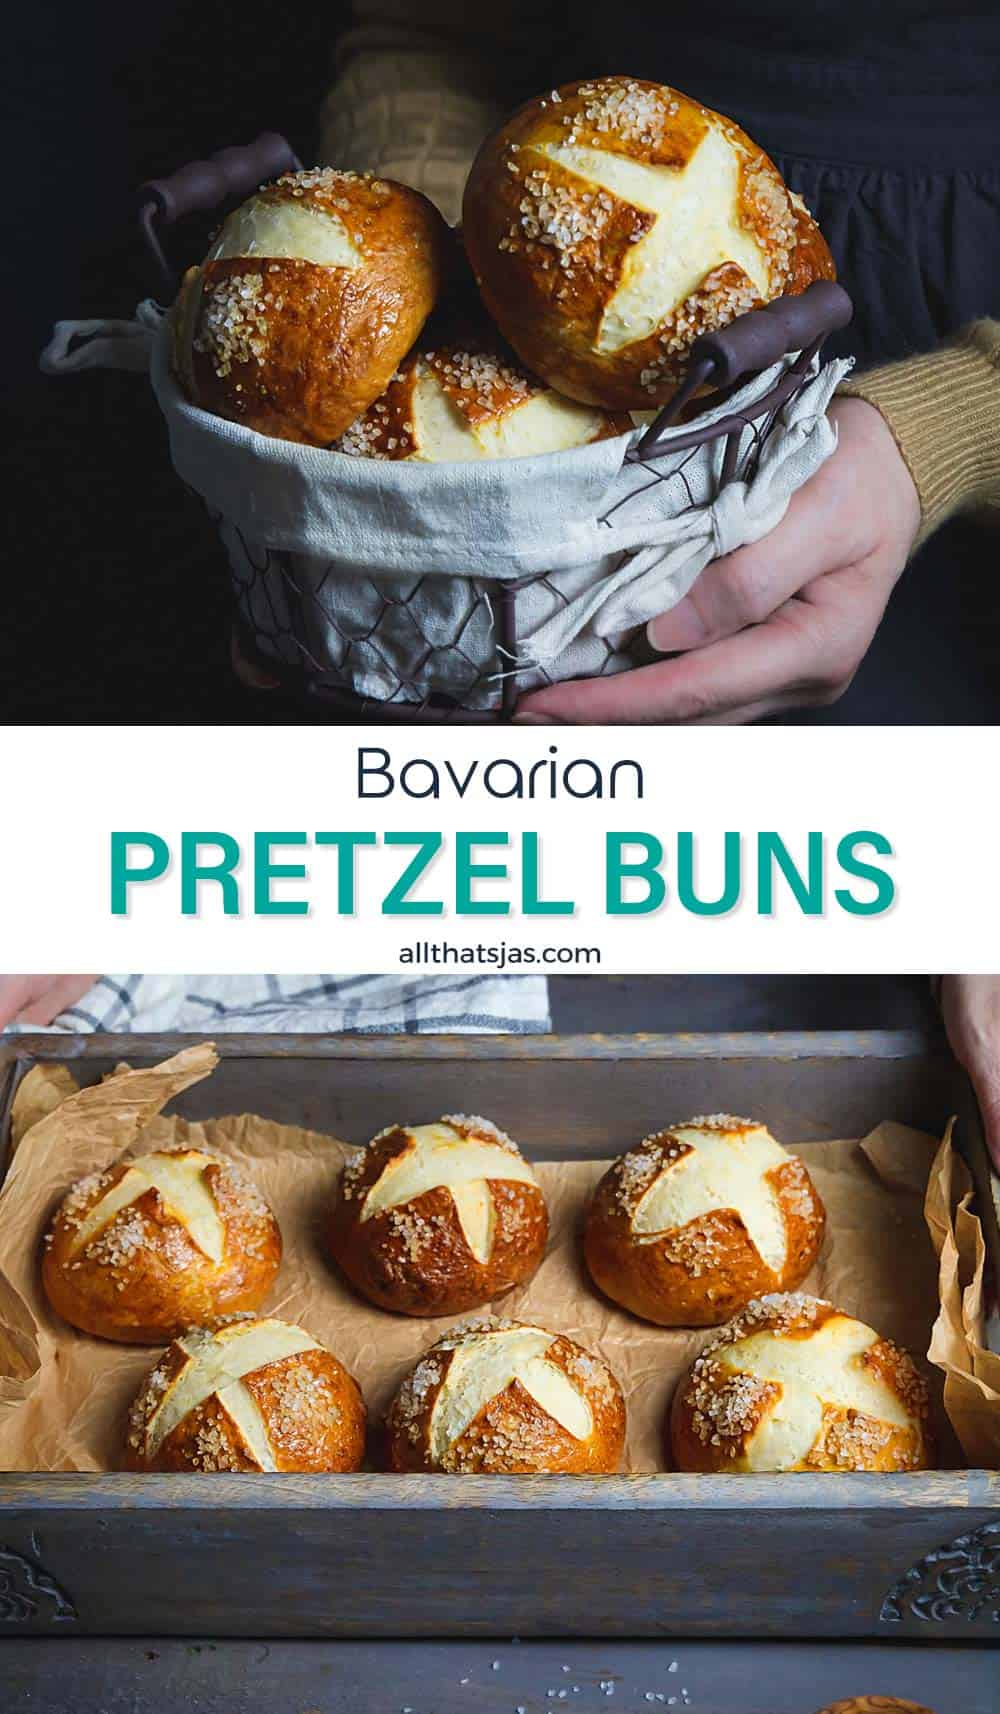 Two photo image of Bavarian pretzel rolls with text in the middle.